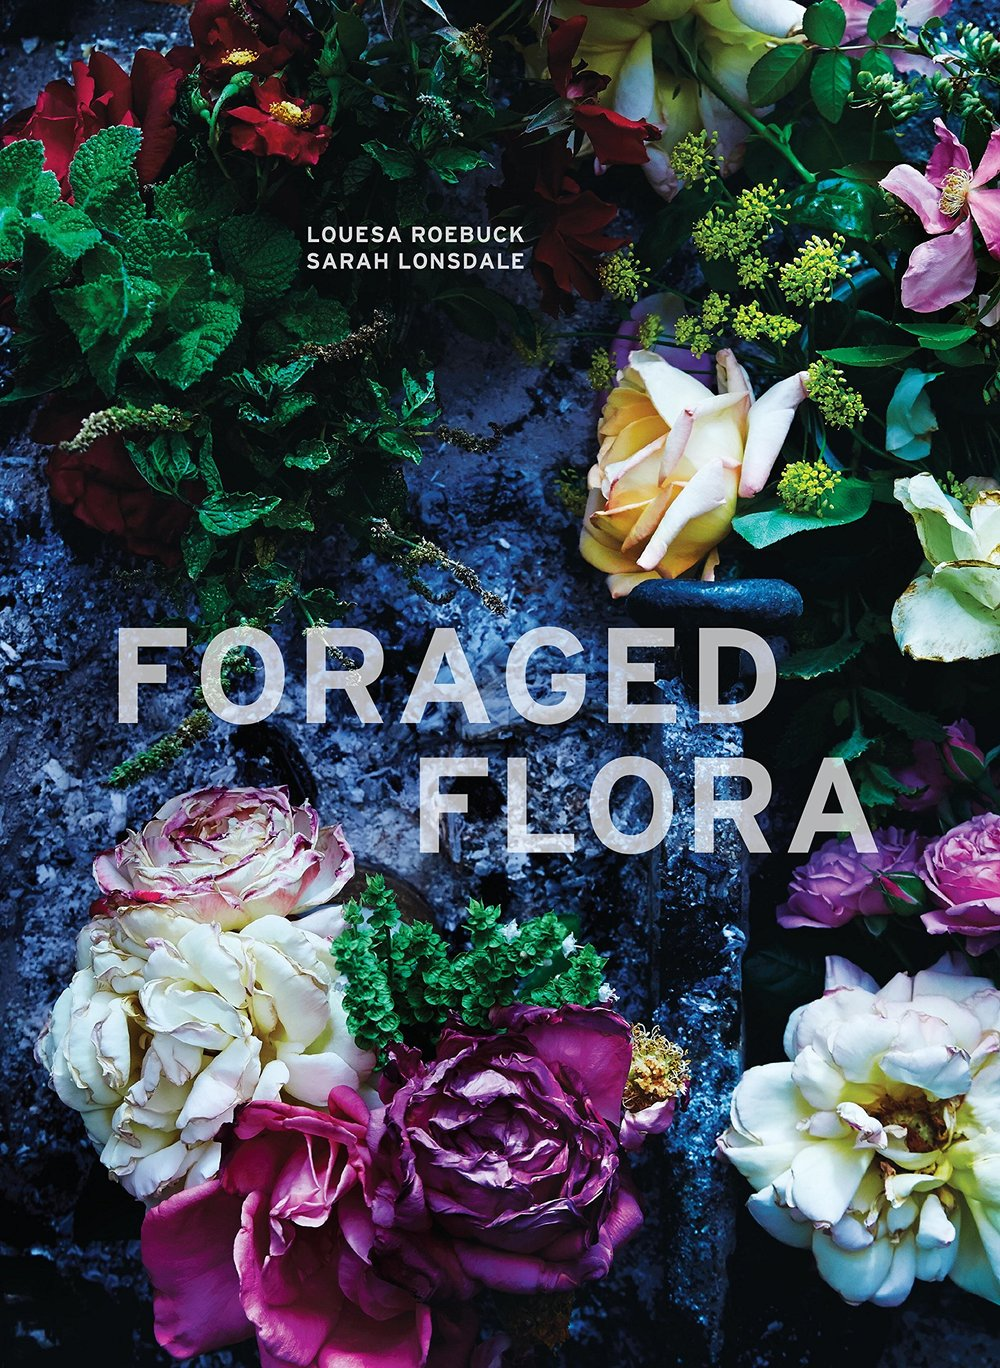 Copy of Foraged Flora